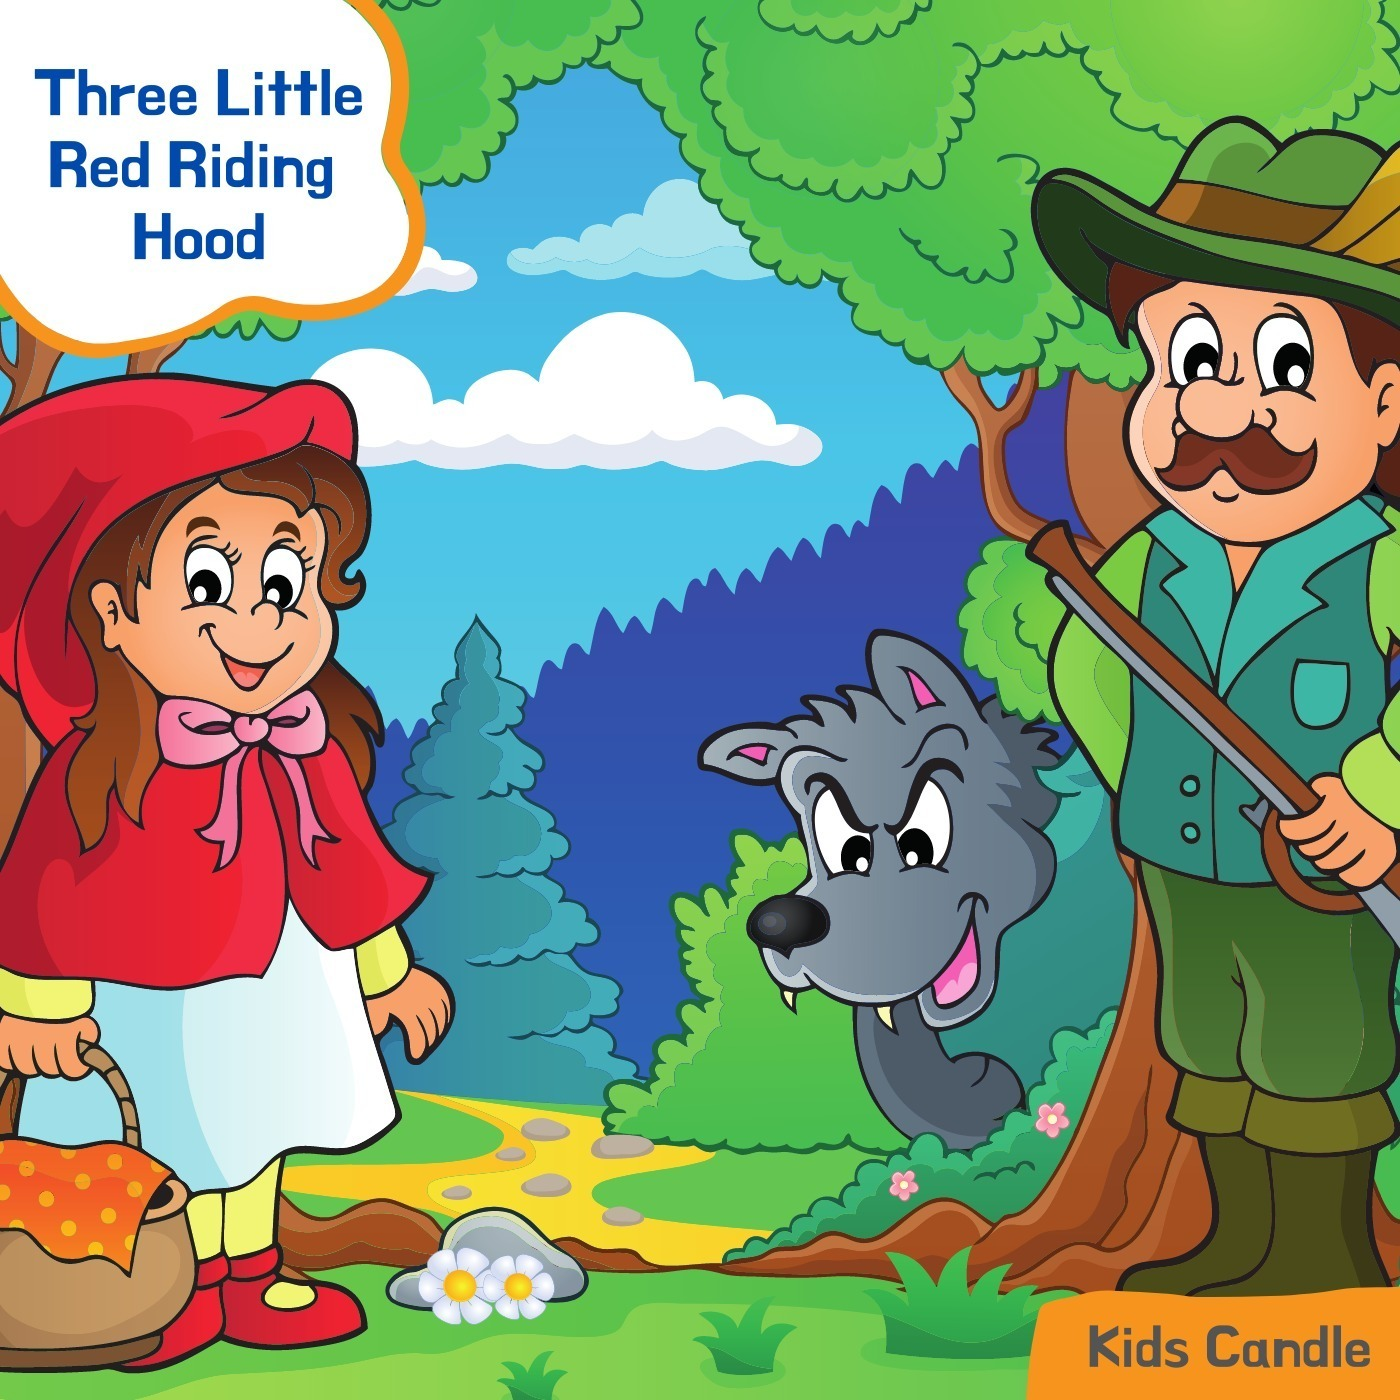 Popular Story of The Little Red Riding Hood